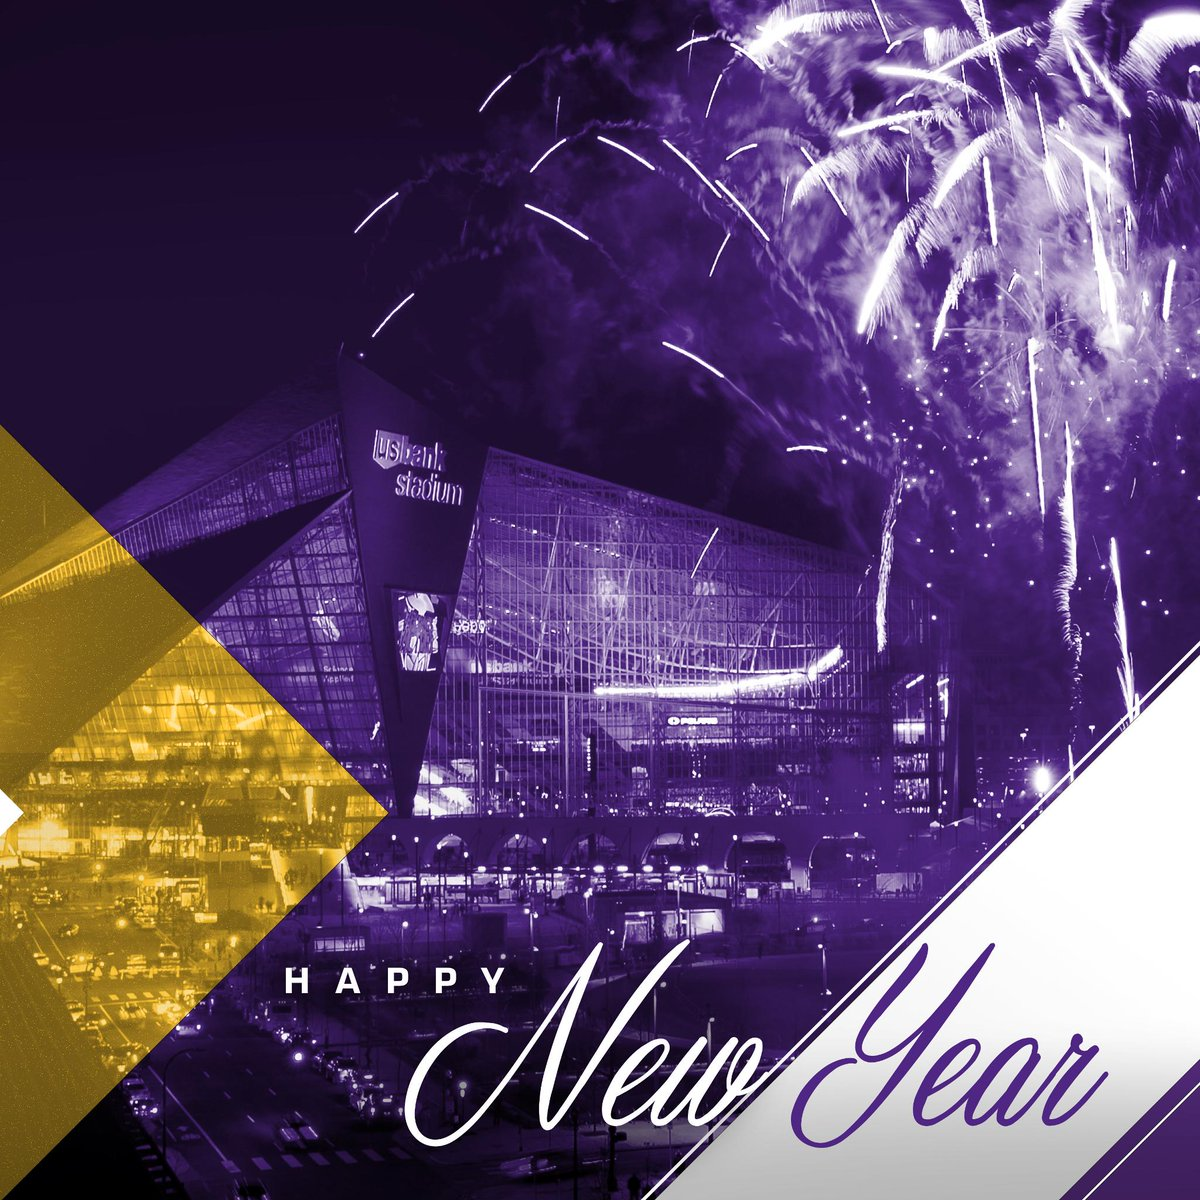 Here S To A Better Year In 2019 Happy New Year Vikings Fans